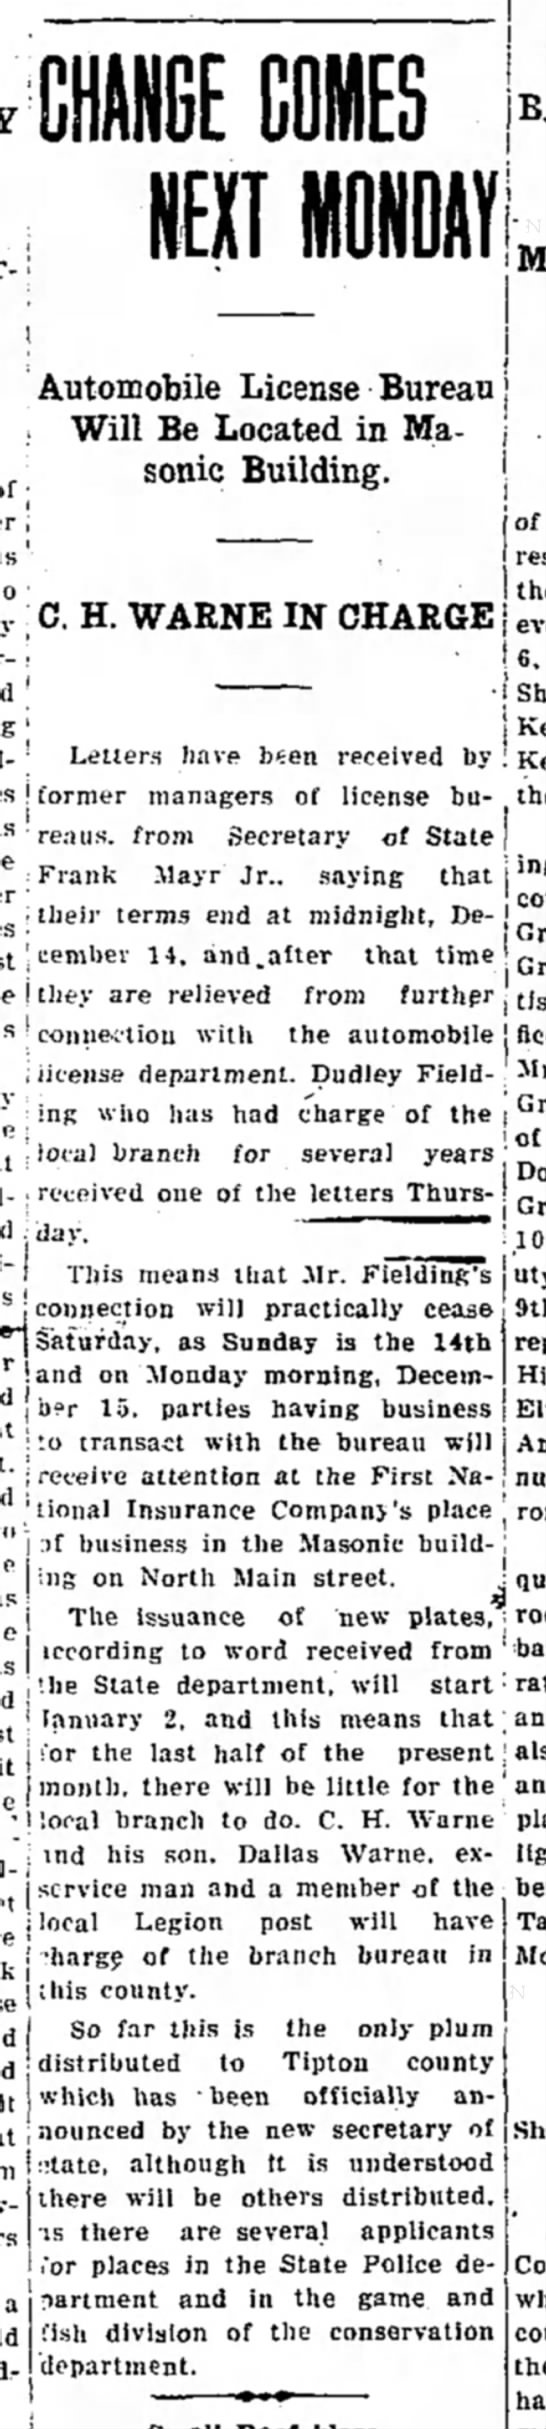 Tipton Tribune 12 Dec 1930 pg 1 col 2 -